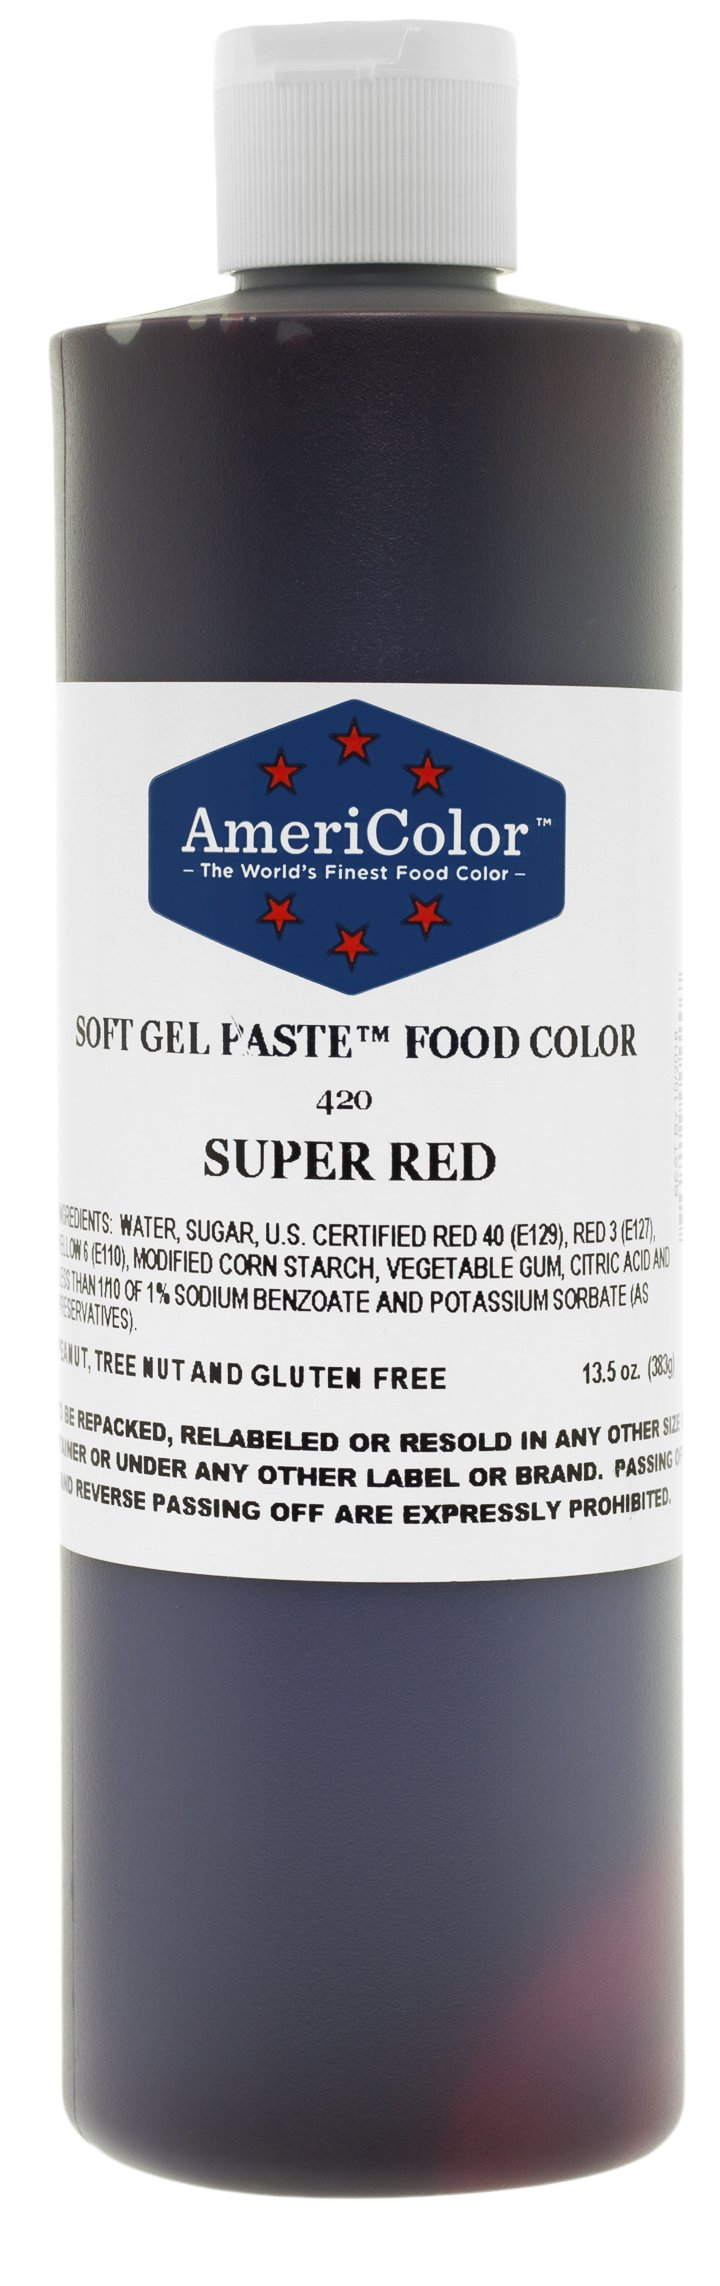 Americolor Food Color Super Red 13.5 Oz by AmeriColor